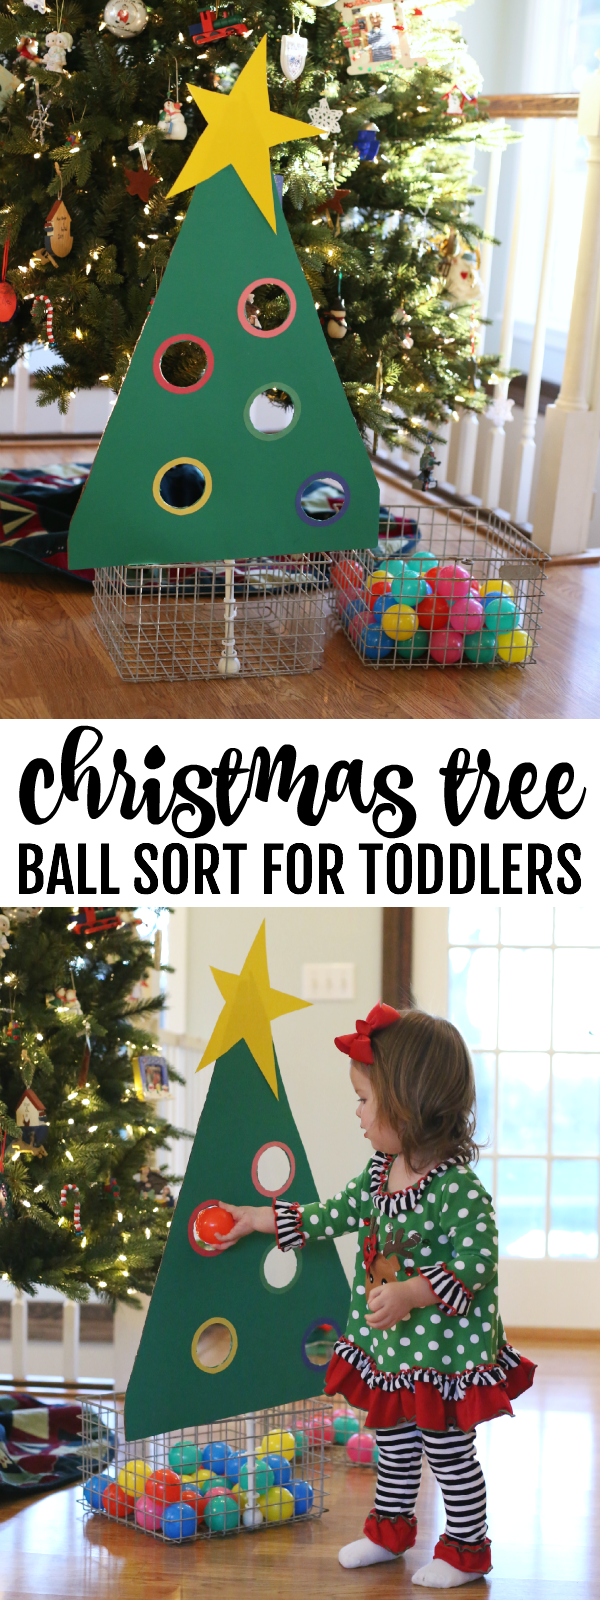 Christmas Tree Ball Sort For Toddlers Juegos Navidad